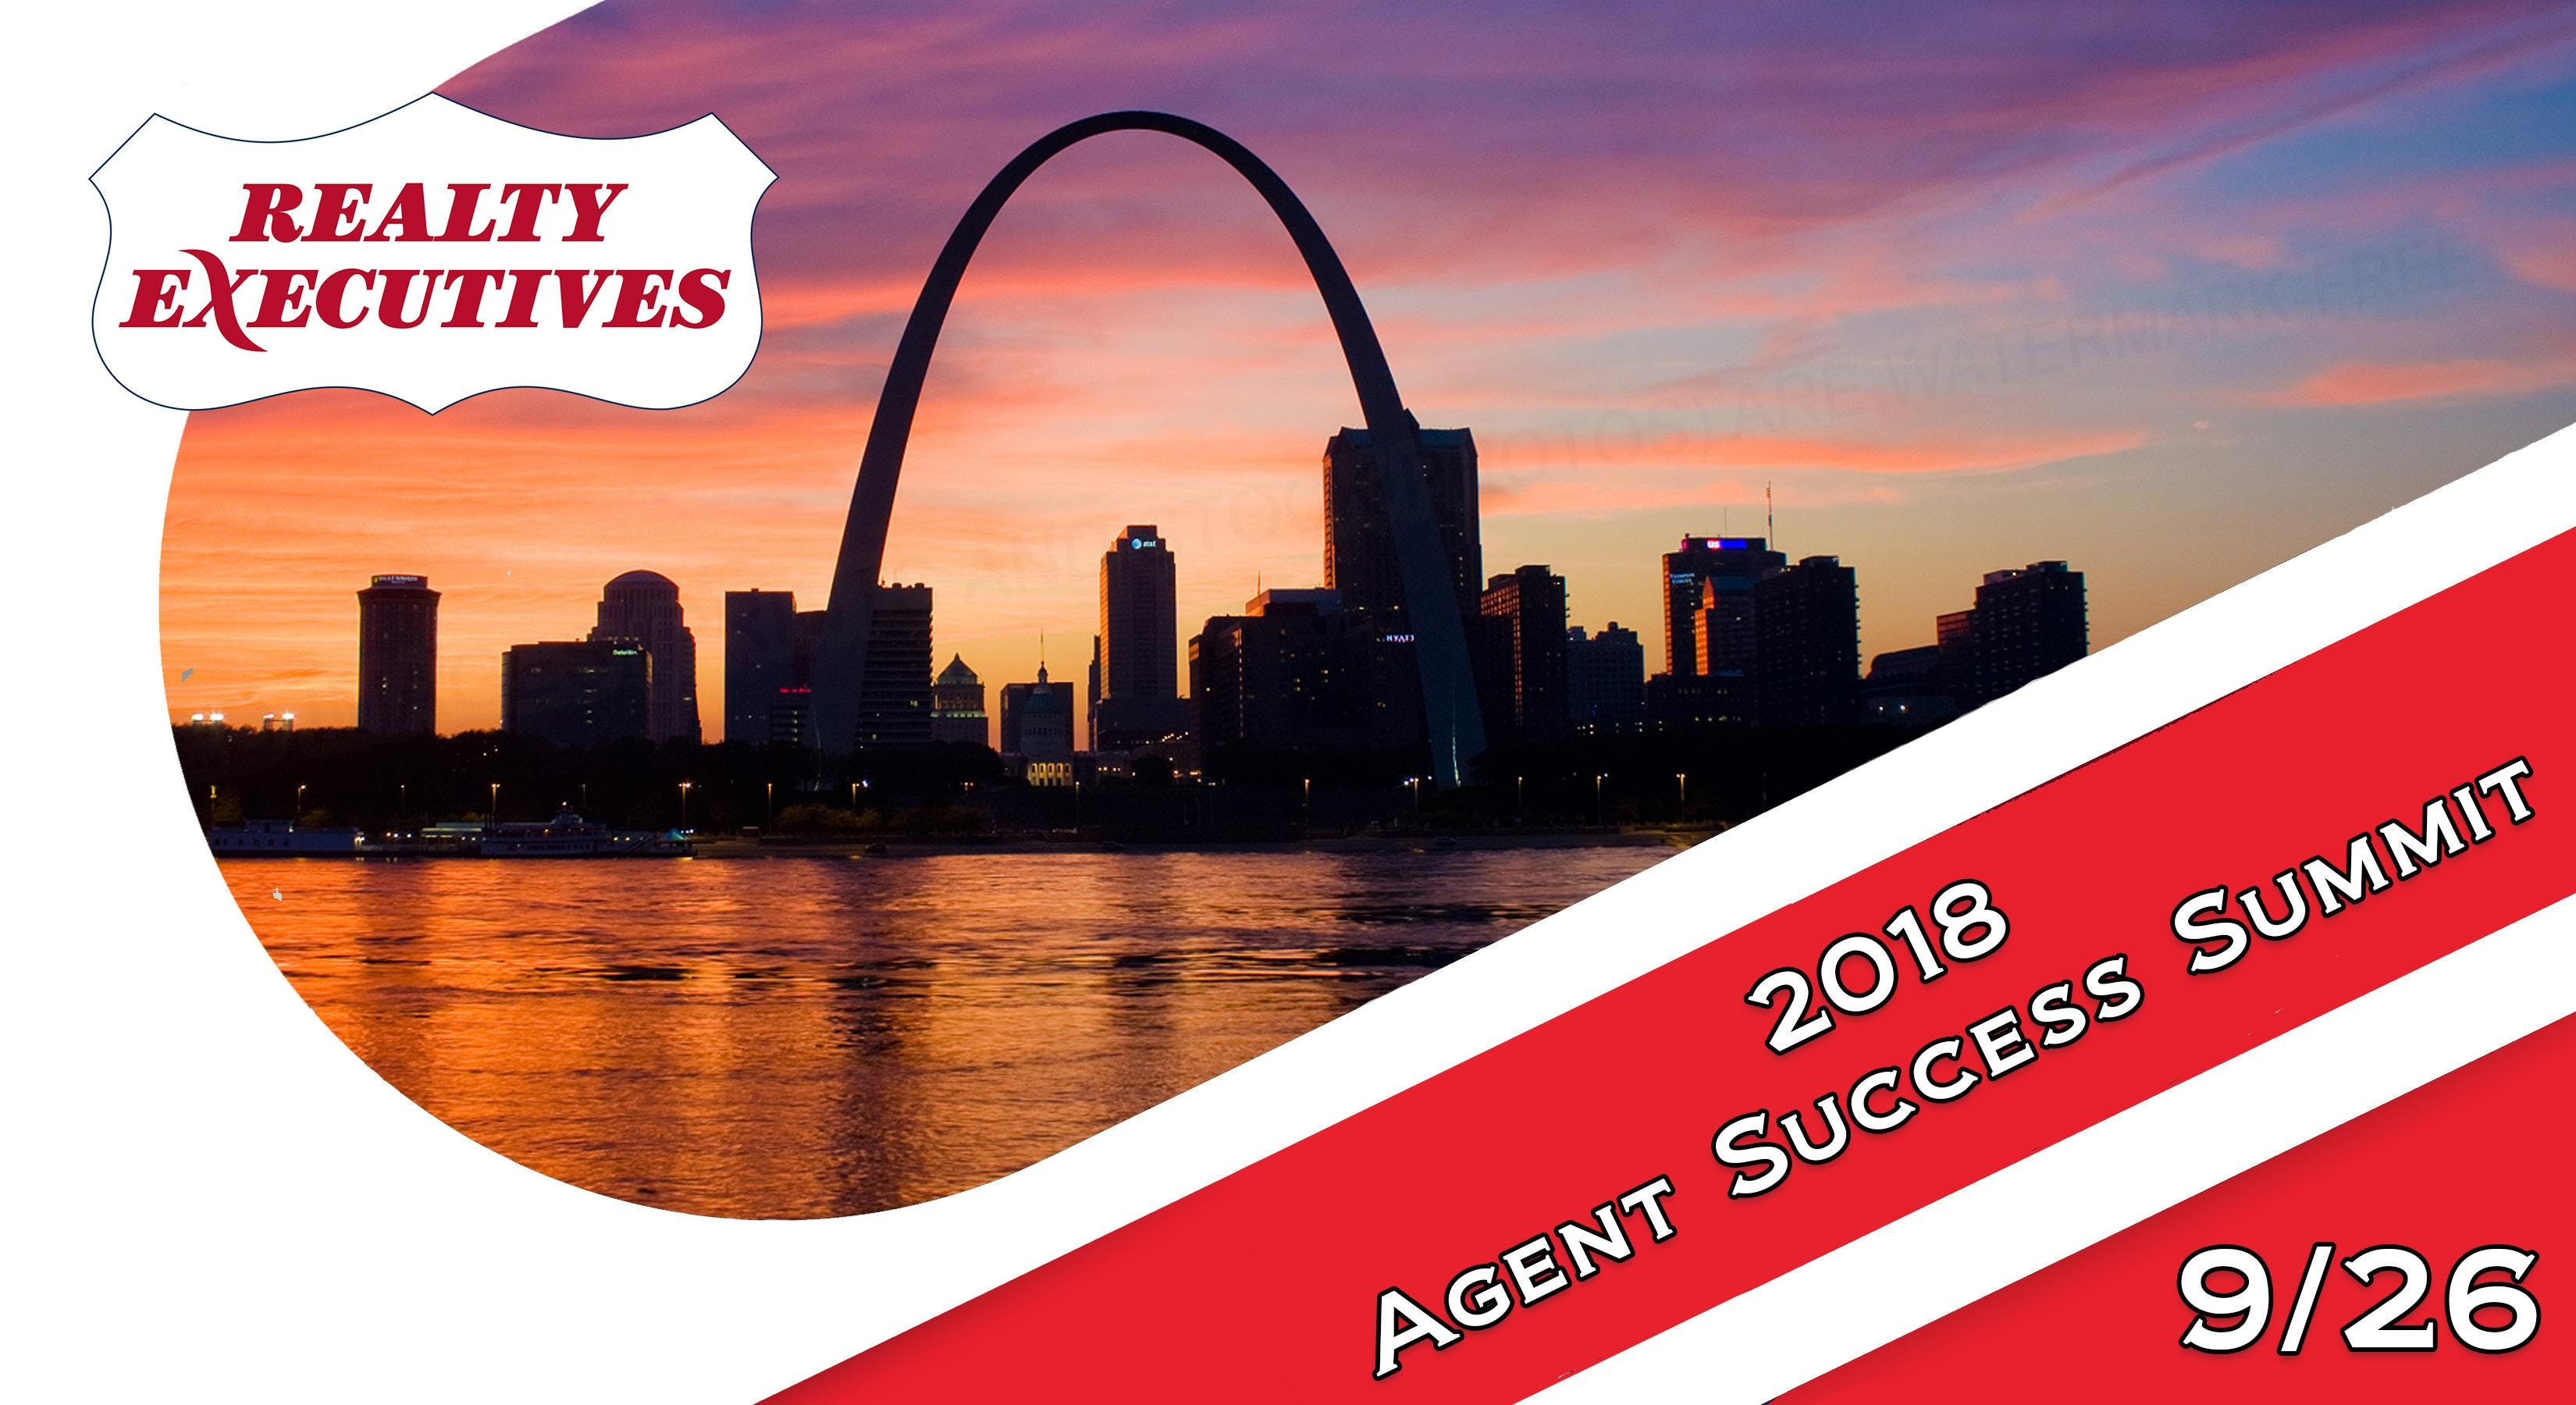 Realty Executives 2018 Agent Success Summit -